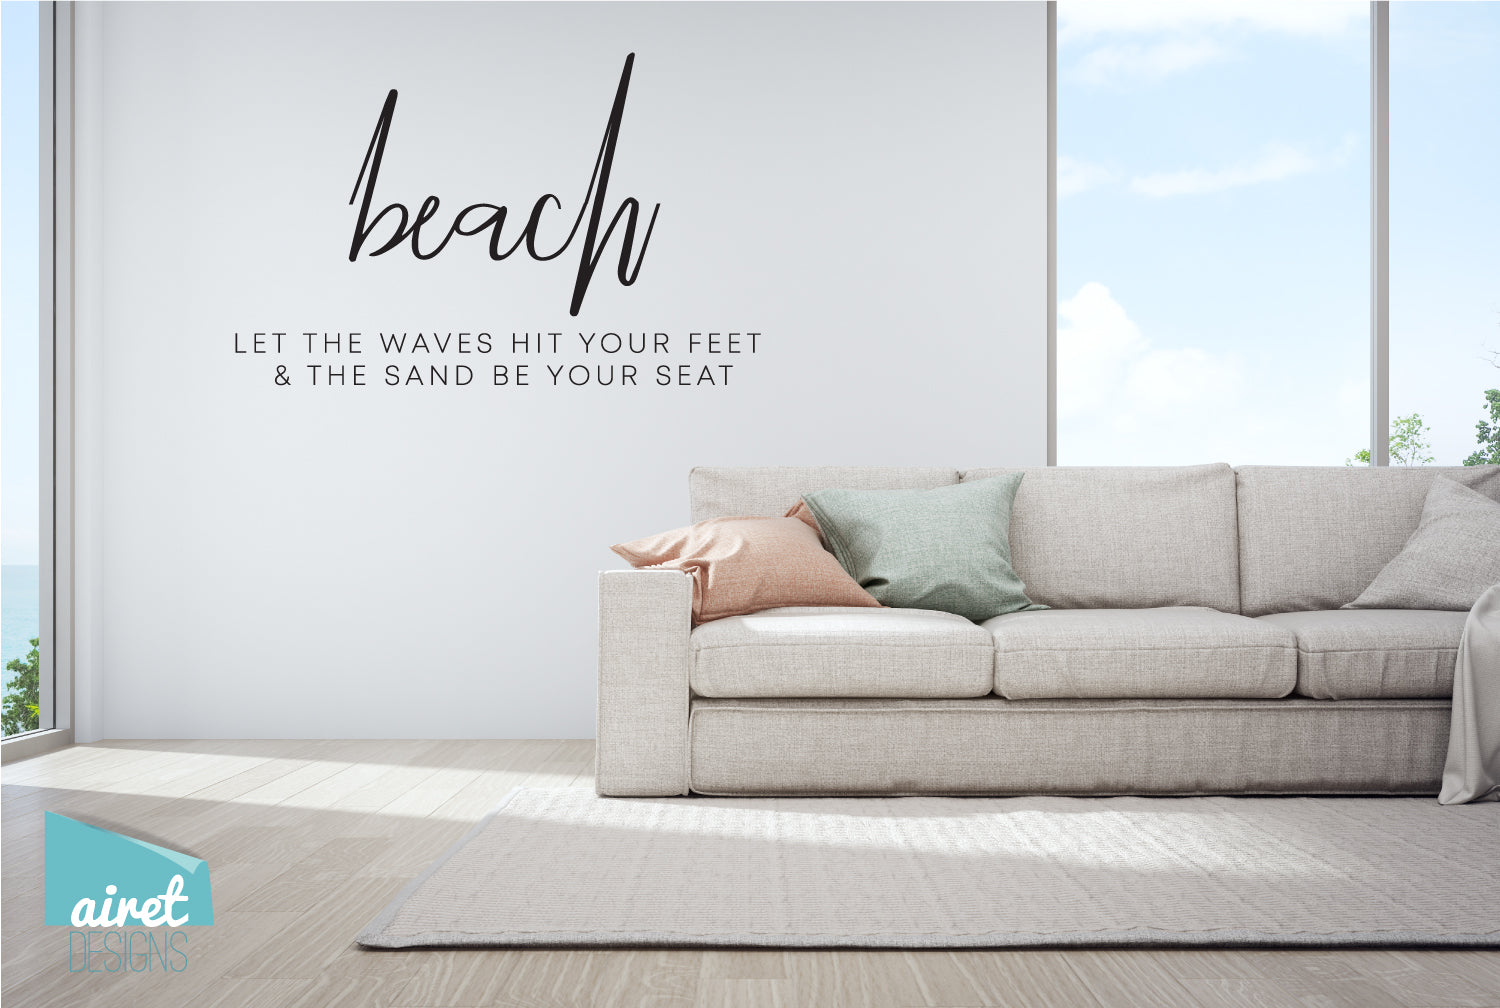 Beach - Let the waves hit your feet & the sand be your seat - Vinyl Decal Home Ocean Holiday Tropical Low Tech Vacation Beach House Cabin v3